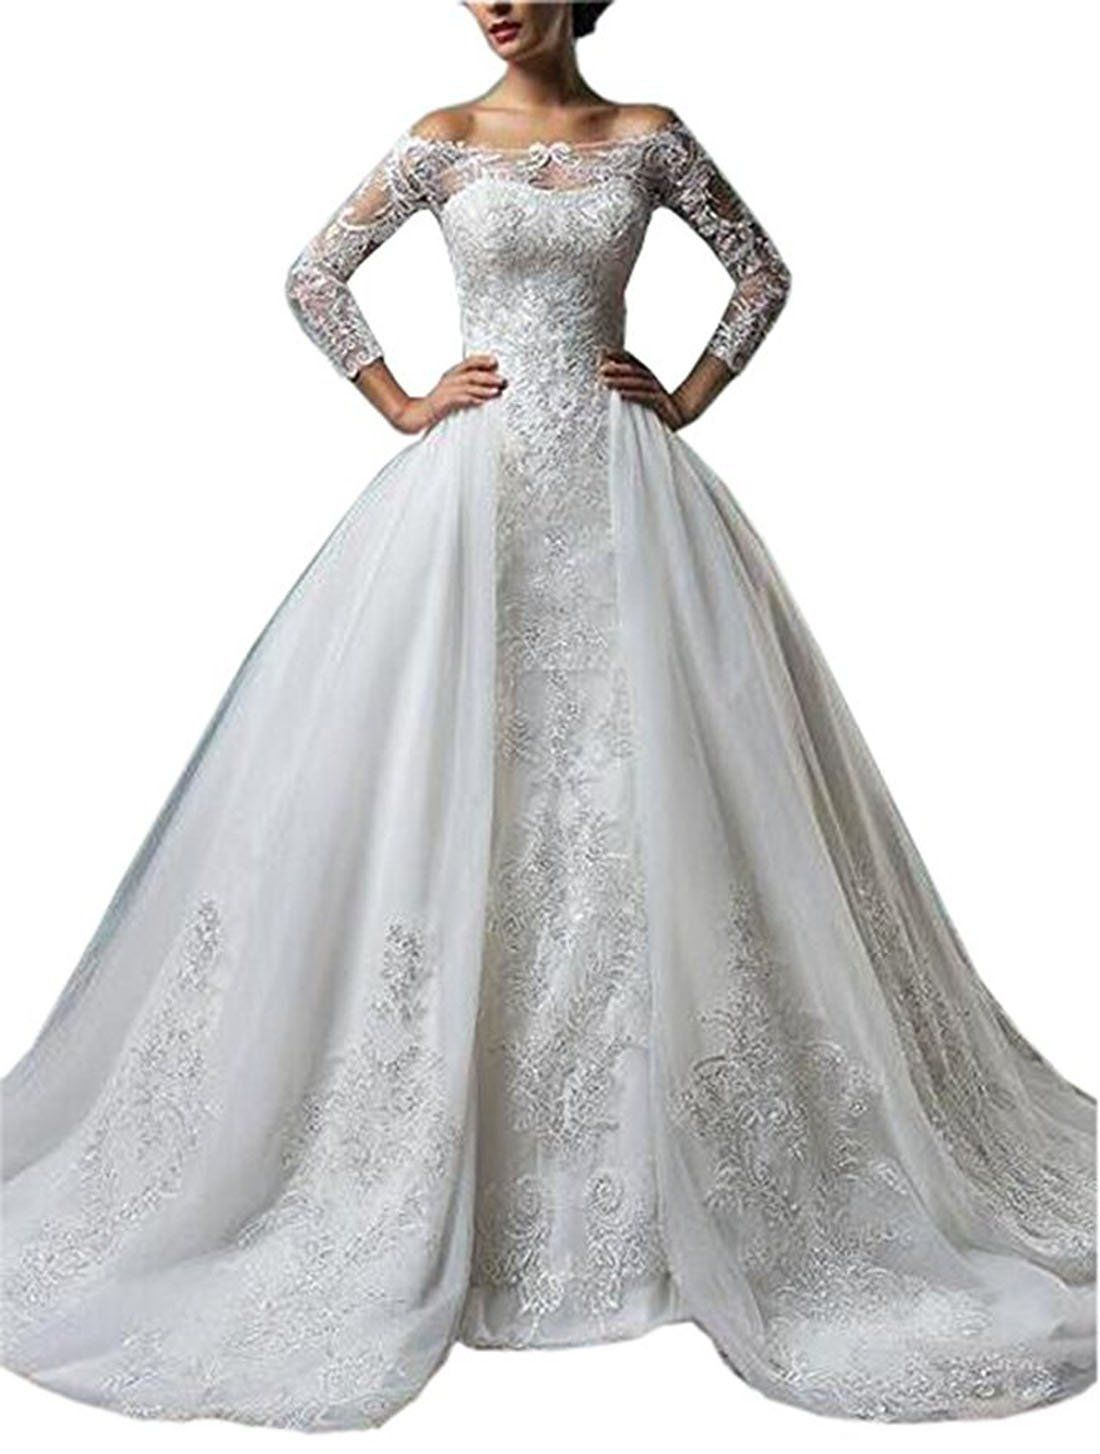 Wannisha gorgeous off the shoulder long sleeves lace wedding dress